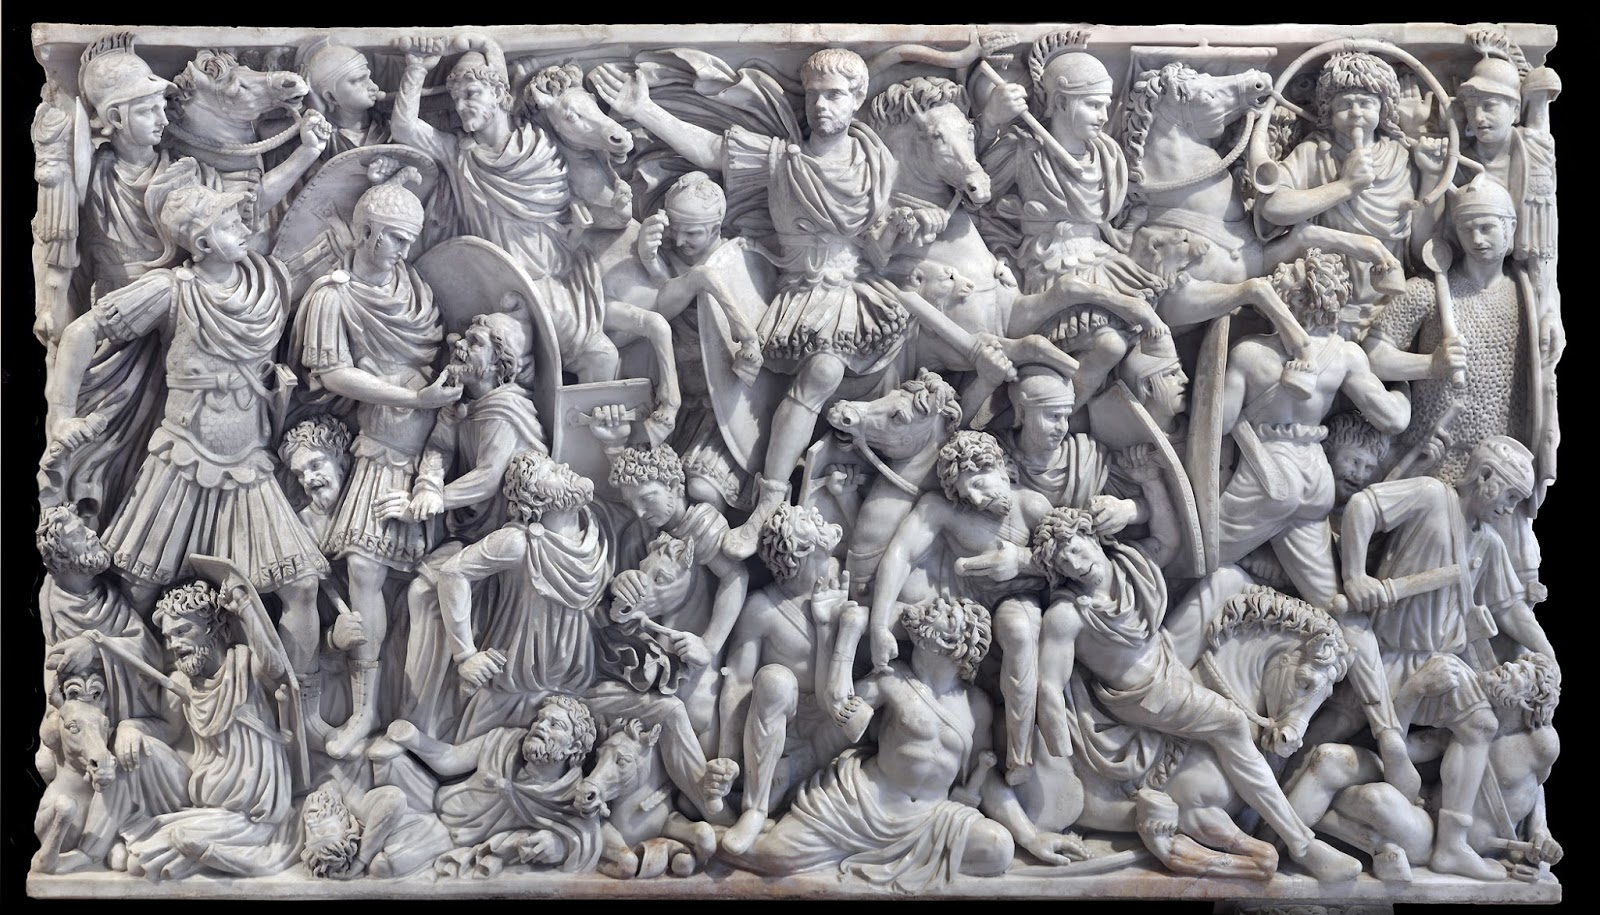 The Ludovisi Battle Sarcophagus